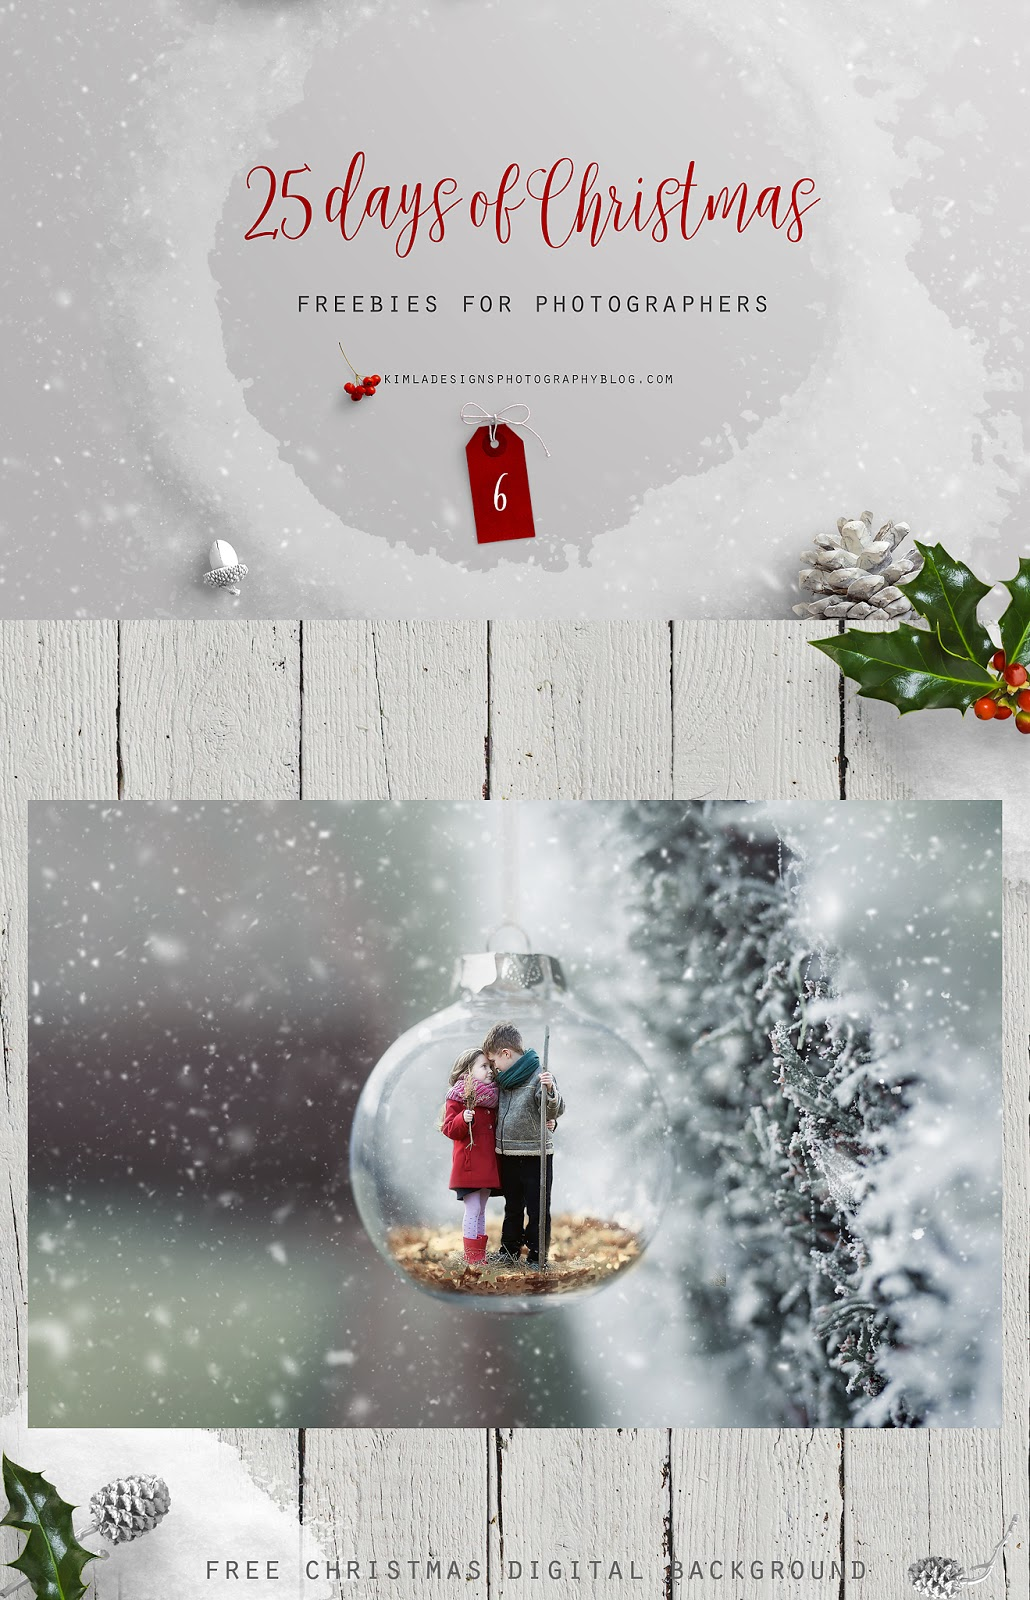 Day 6 of 25 Days of Christmas Freebies for Photographers